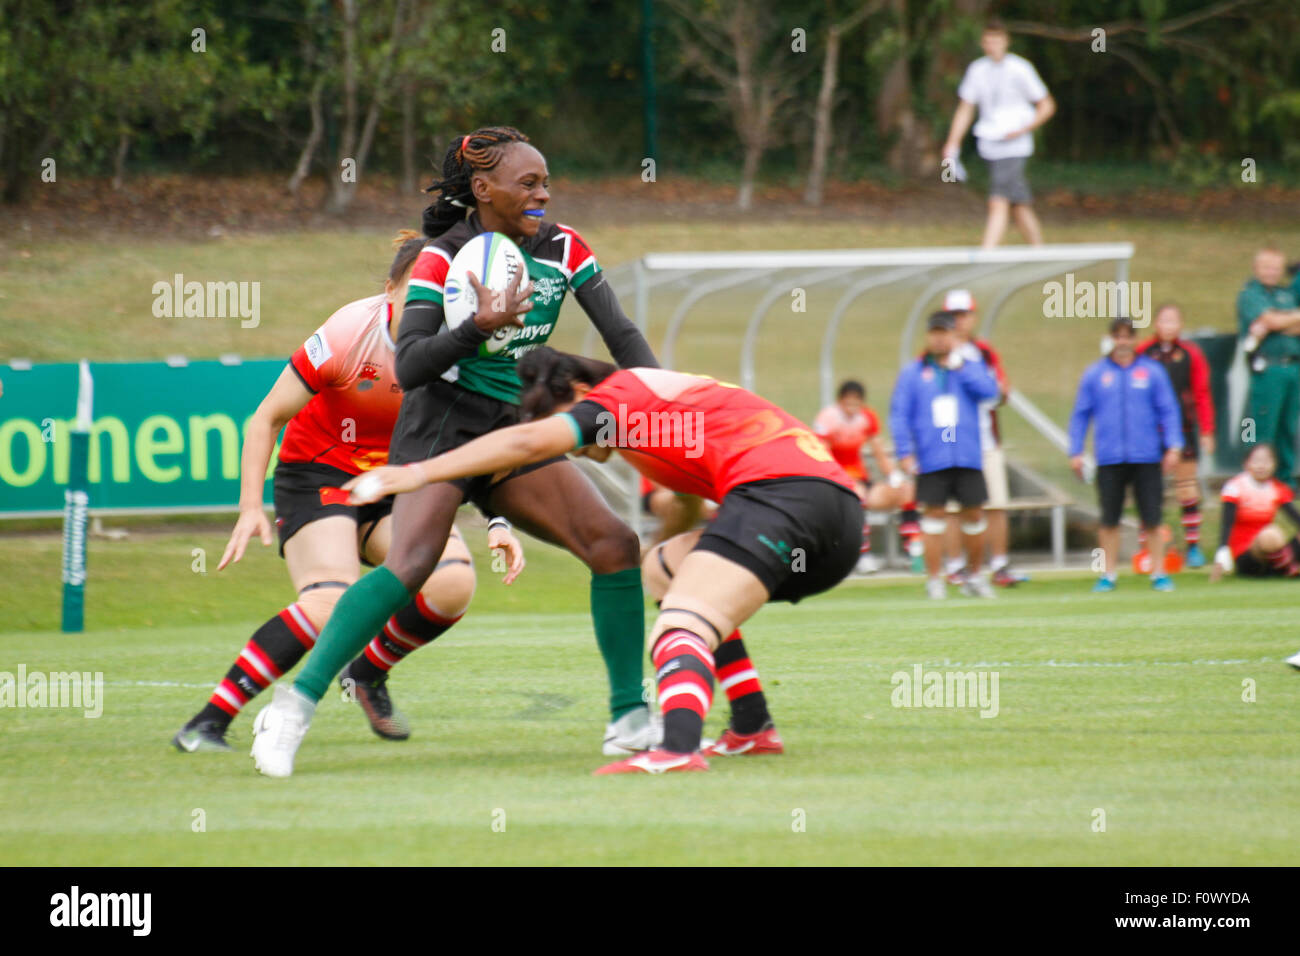 Dublin, Ireland. 22nd August 2015. Kenya's Celestine Masinde with the ball during their match against China - Stock Image